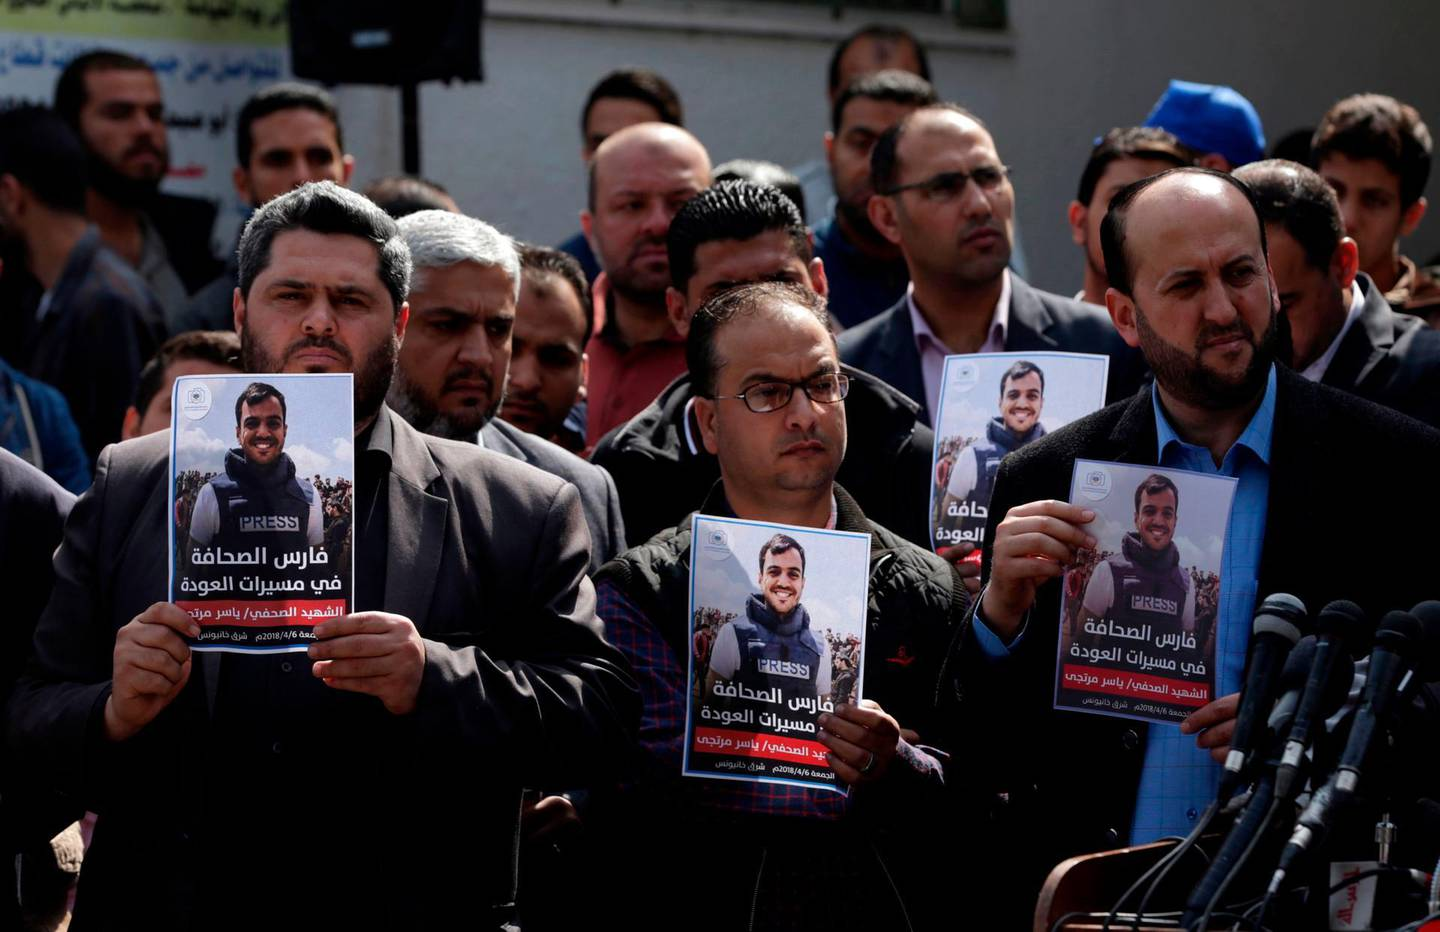 Palestinian journalists carry a portrait of journalist Yasser Murtaja, during his funeral in Gaza City on April 7, 2018. Among those killed at Friday's protest was Yasser Murtaja, a photographer with the Gaza-based Ain Media agency, who died from his wounds after being shot, the local health ministry said.   Murtaja's company confirmed his death, with witnesses saying he was close to the front of the protests in Southern Gaza when he was hit. / AFP PHOTO / MAHMUD HAMS